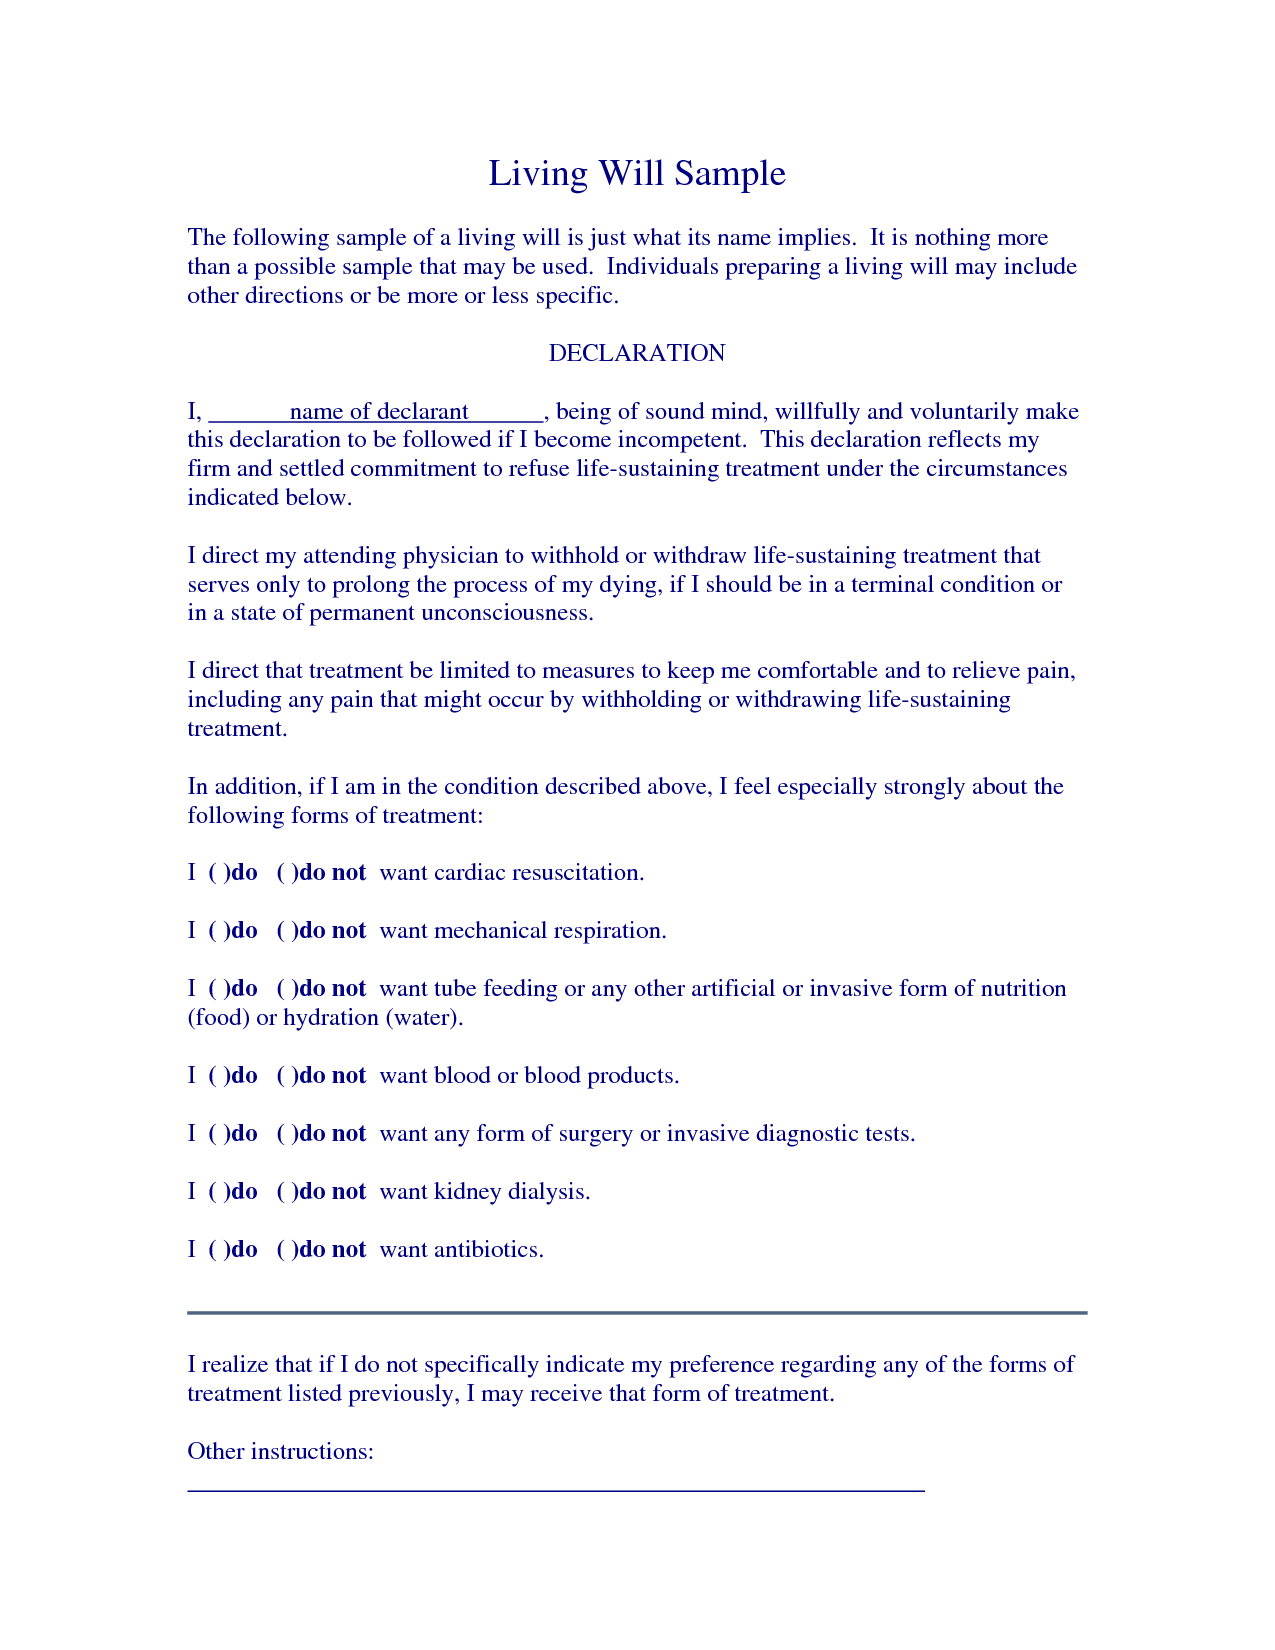 Free Living Will Samplescrizlap - Living Will Examples | Legal - Free Printable Living Will